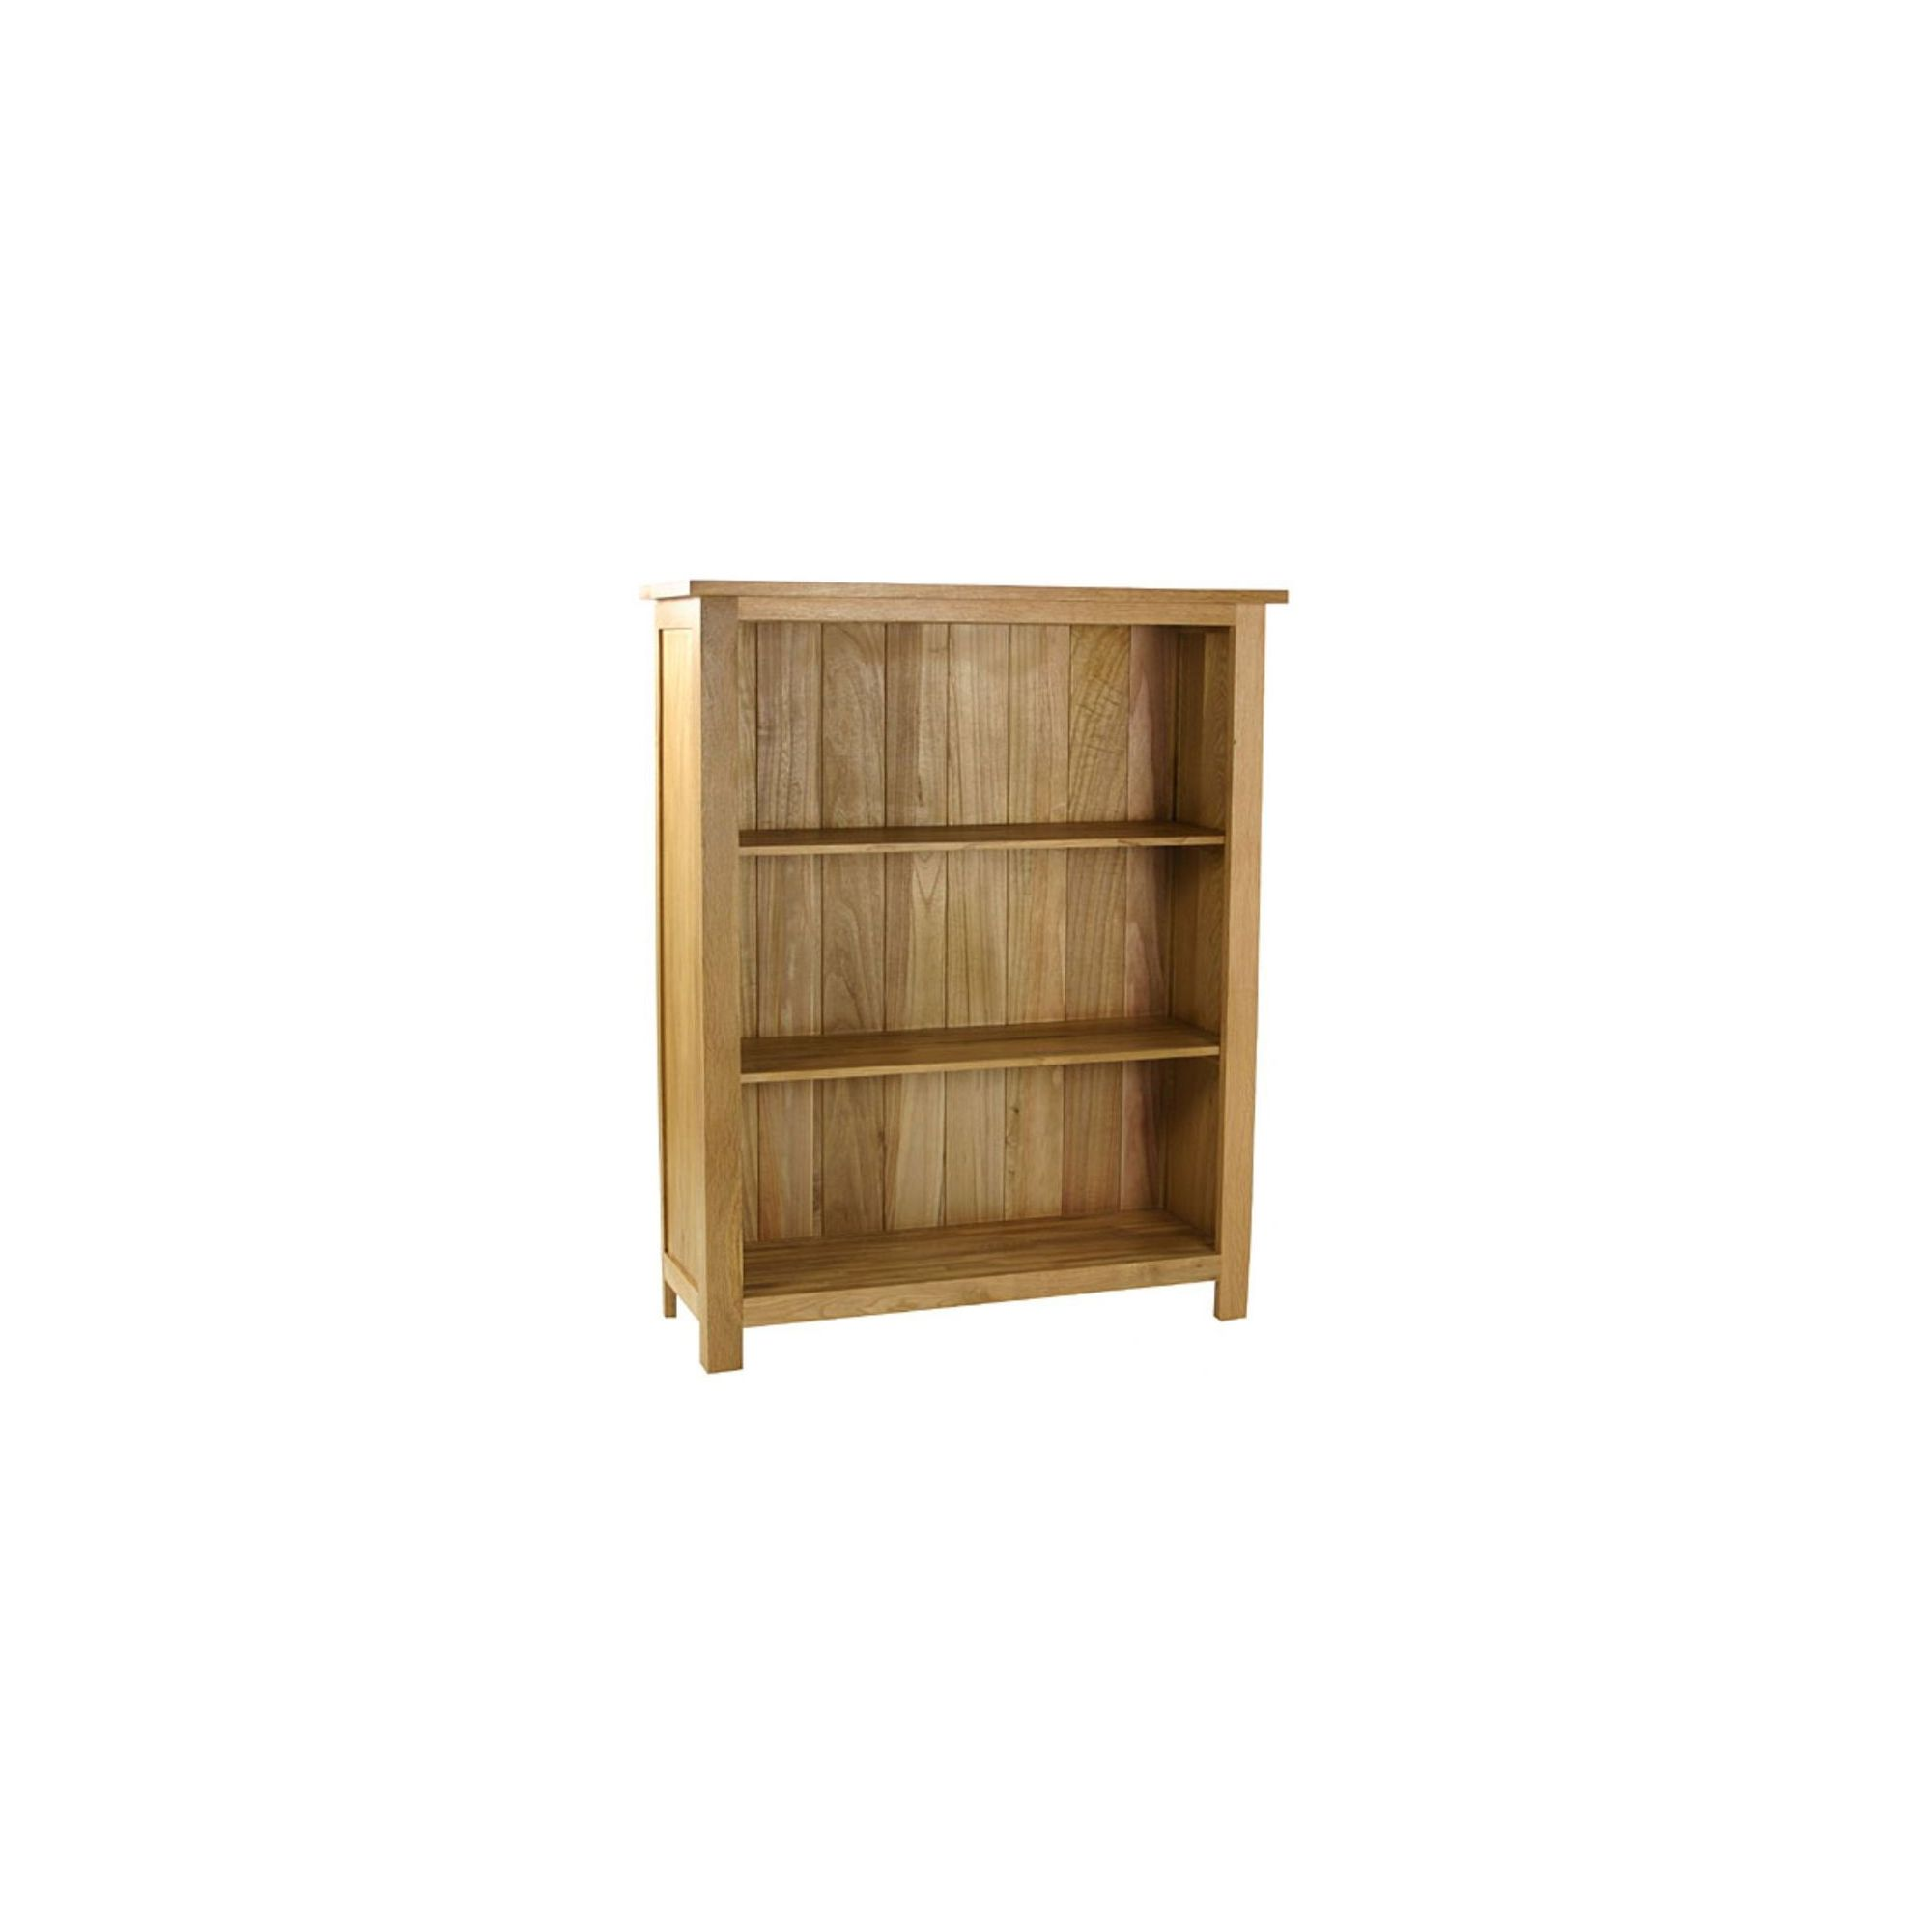 Kelburn Furniture Essentials Low Bookcase in Light Oak Stain and Satin Lacquer at Tesco Direct